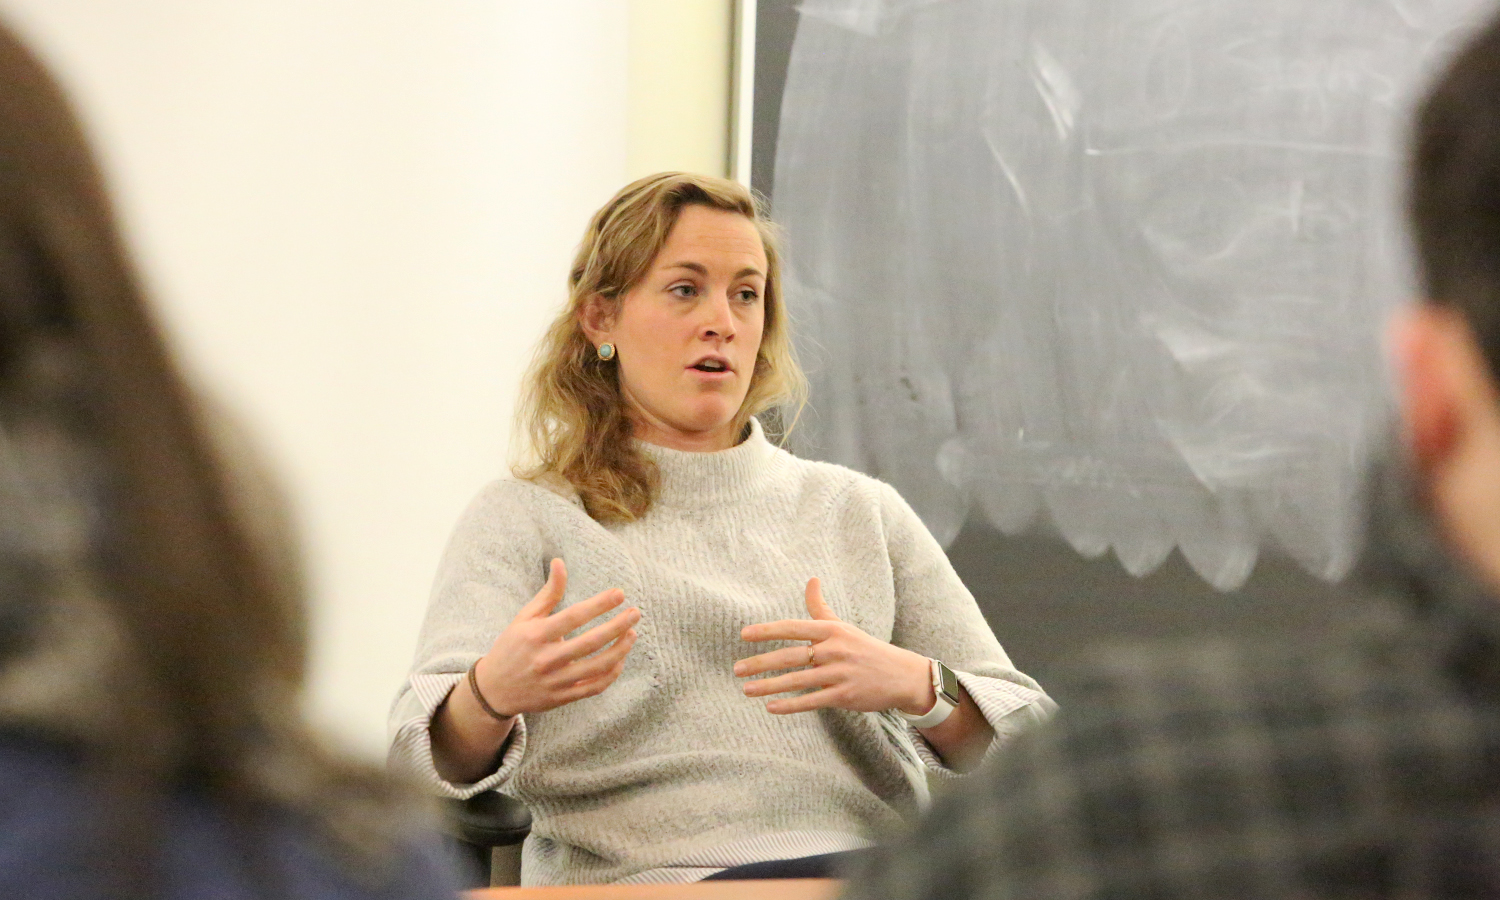 Senior Associate of Recruitment and Operations at Carney Sandoe & Associates Corinne Werner speaks with students about opportunites for teaching placements around the country during an information session in Trnity Hall.